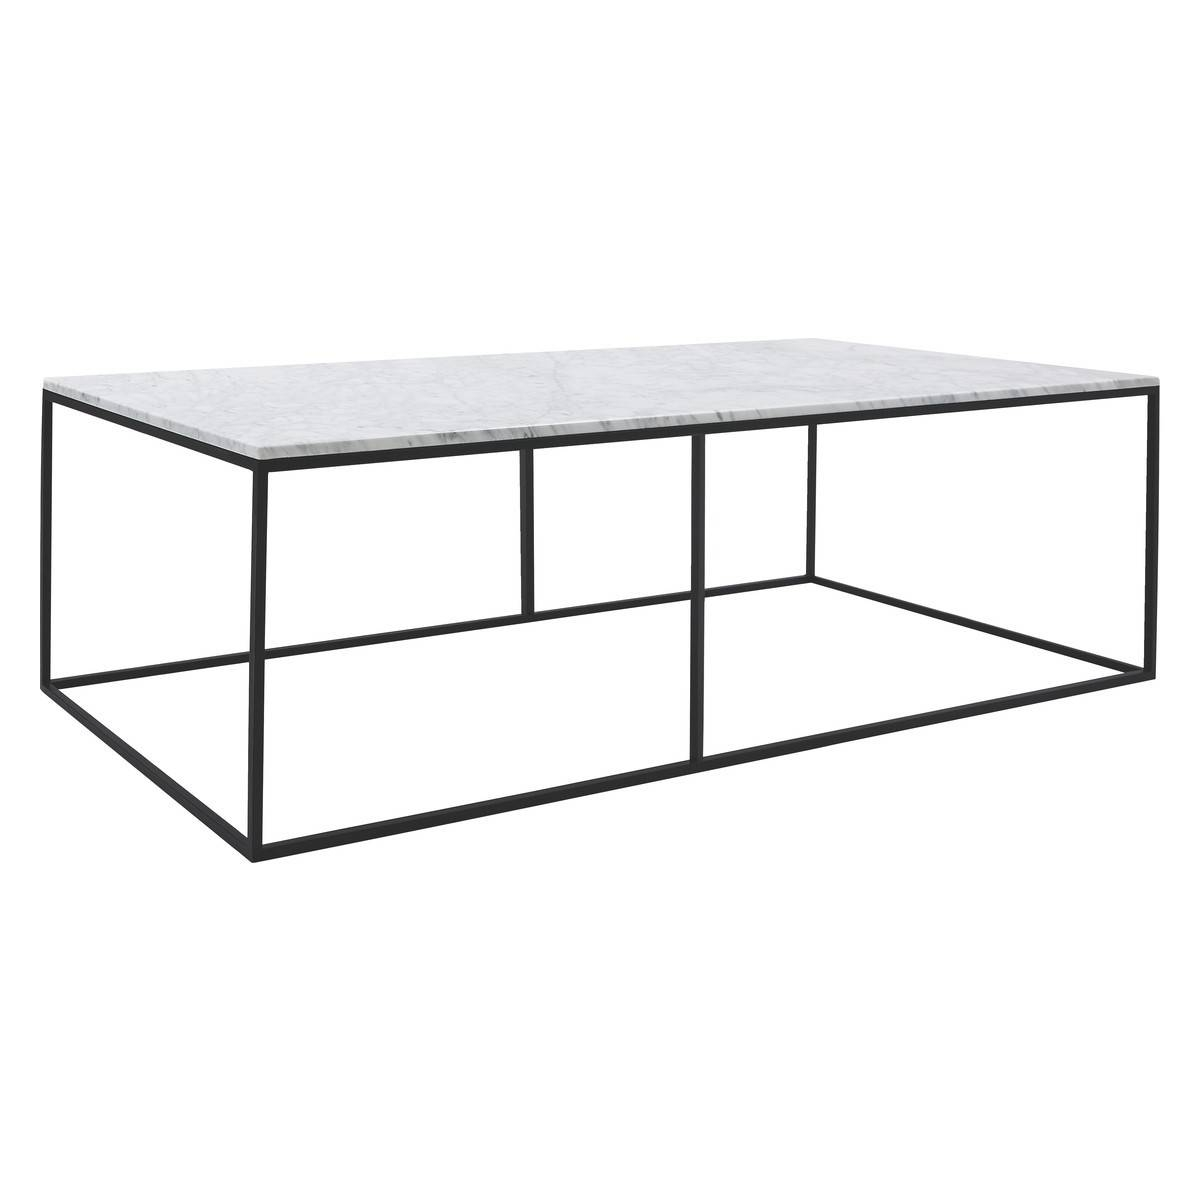 Black Marble Coffee Table Canada: Top 30 Of Large Rectangular Coffee Tables